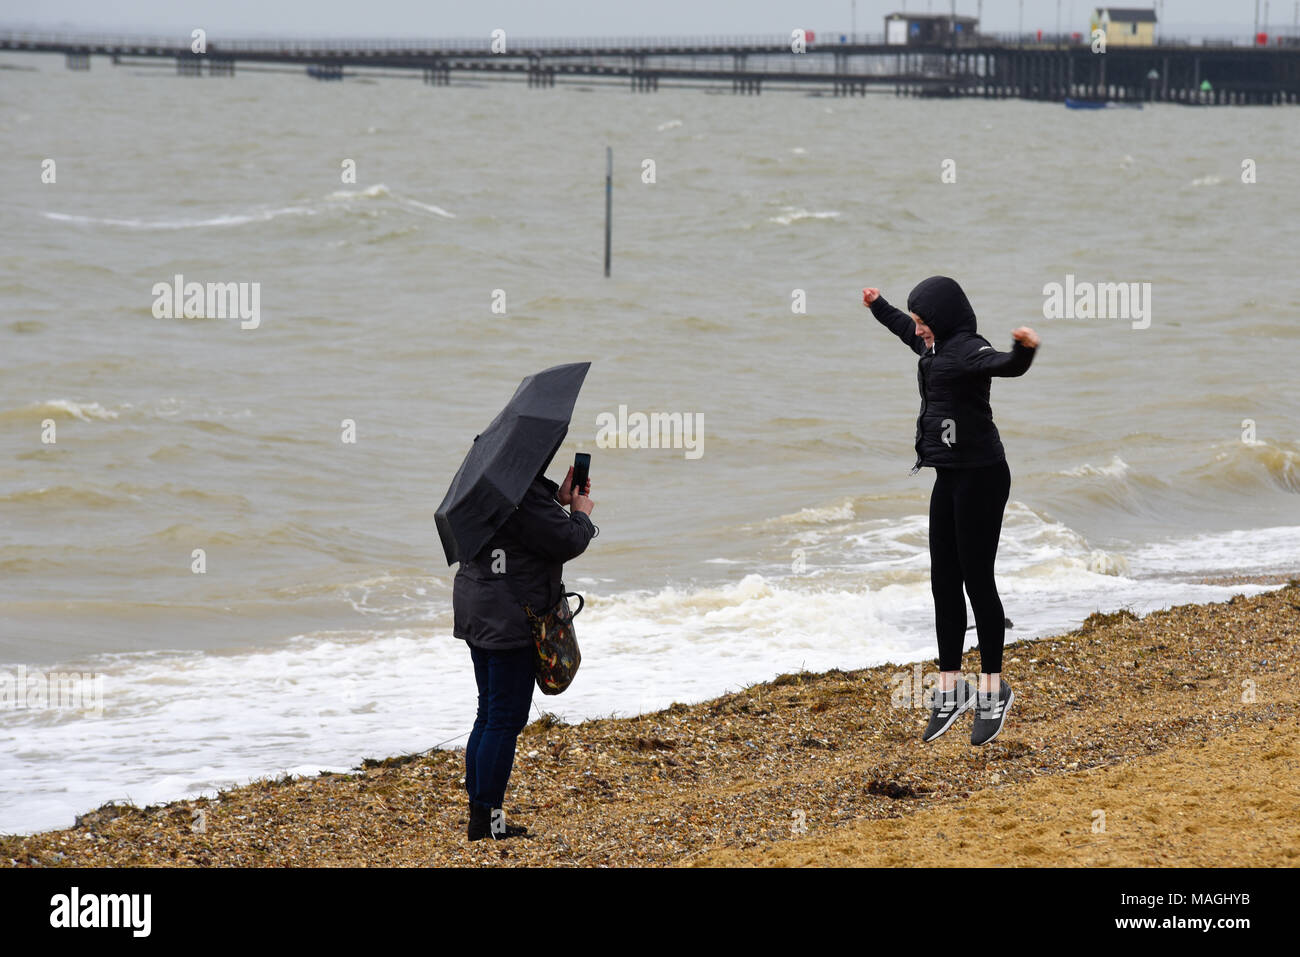 Uk Weather Some Day Trippersved The Bank Holiday Weather In Southend On Sea Es Mother And Daughter On Beach